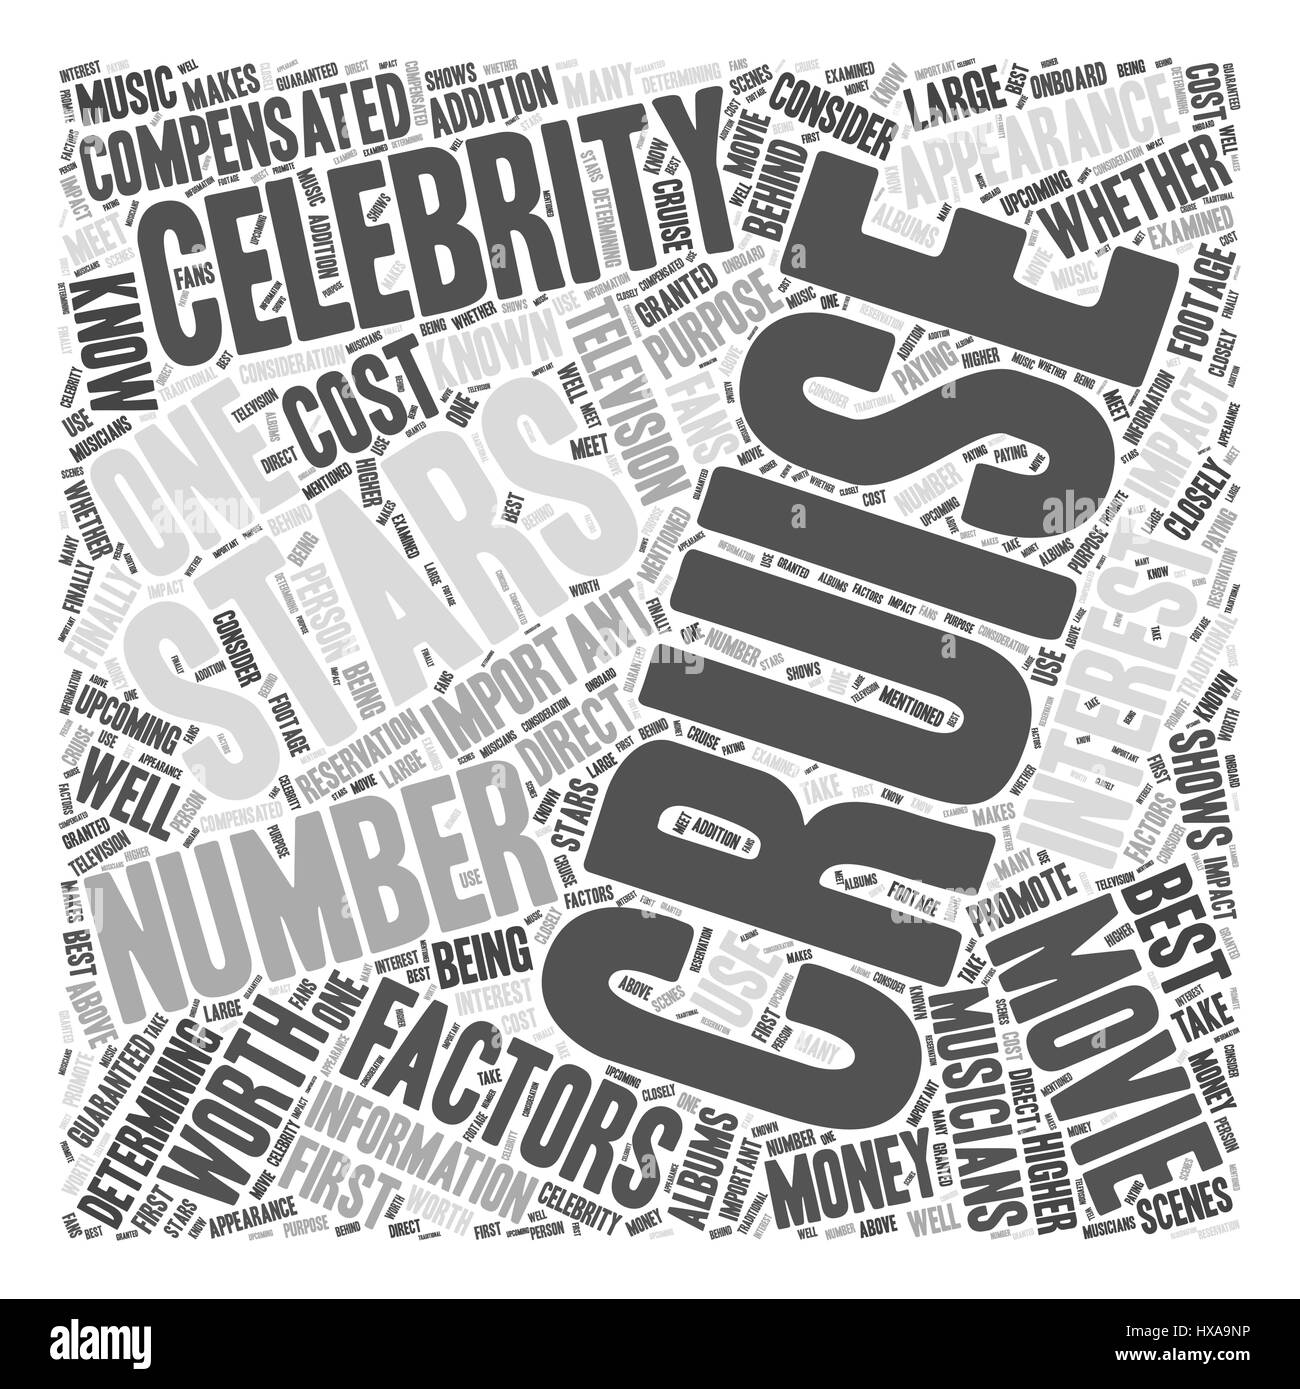 Cruising With a Celebrity Are Celebrity Cruises Worth the Money Word Cloud Concept - Stock Image